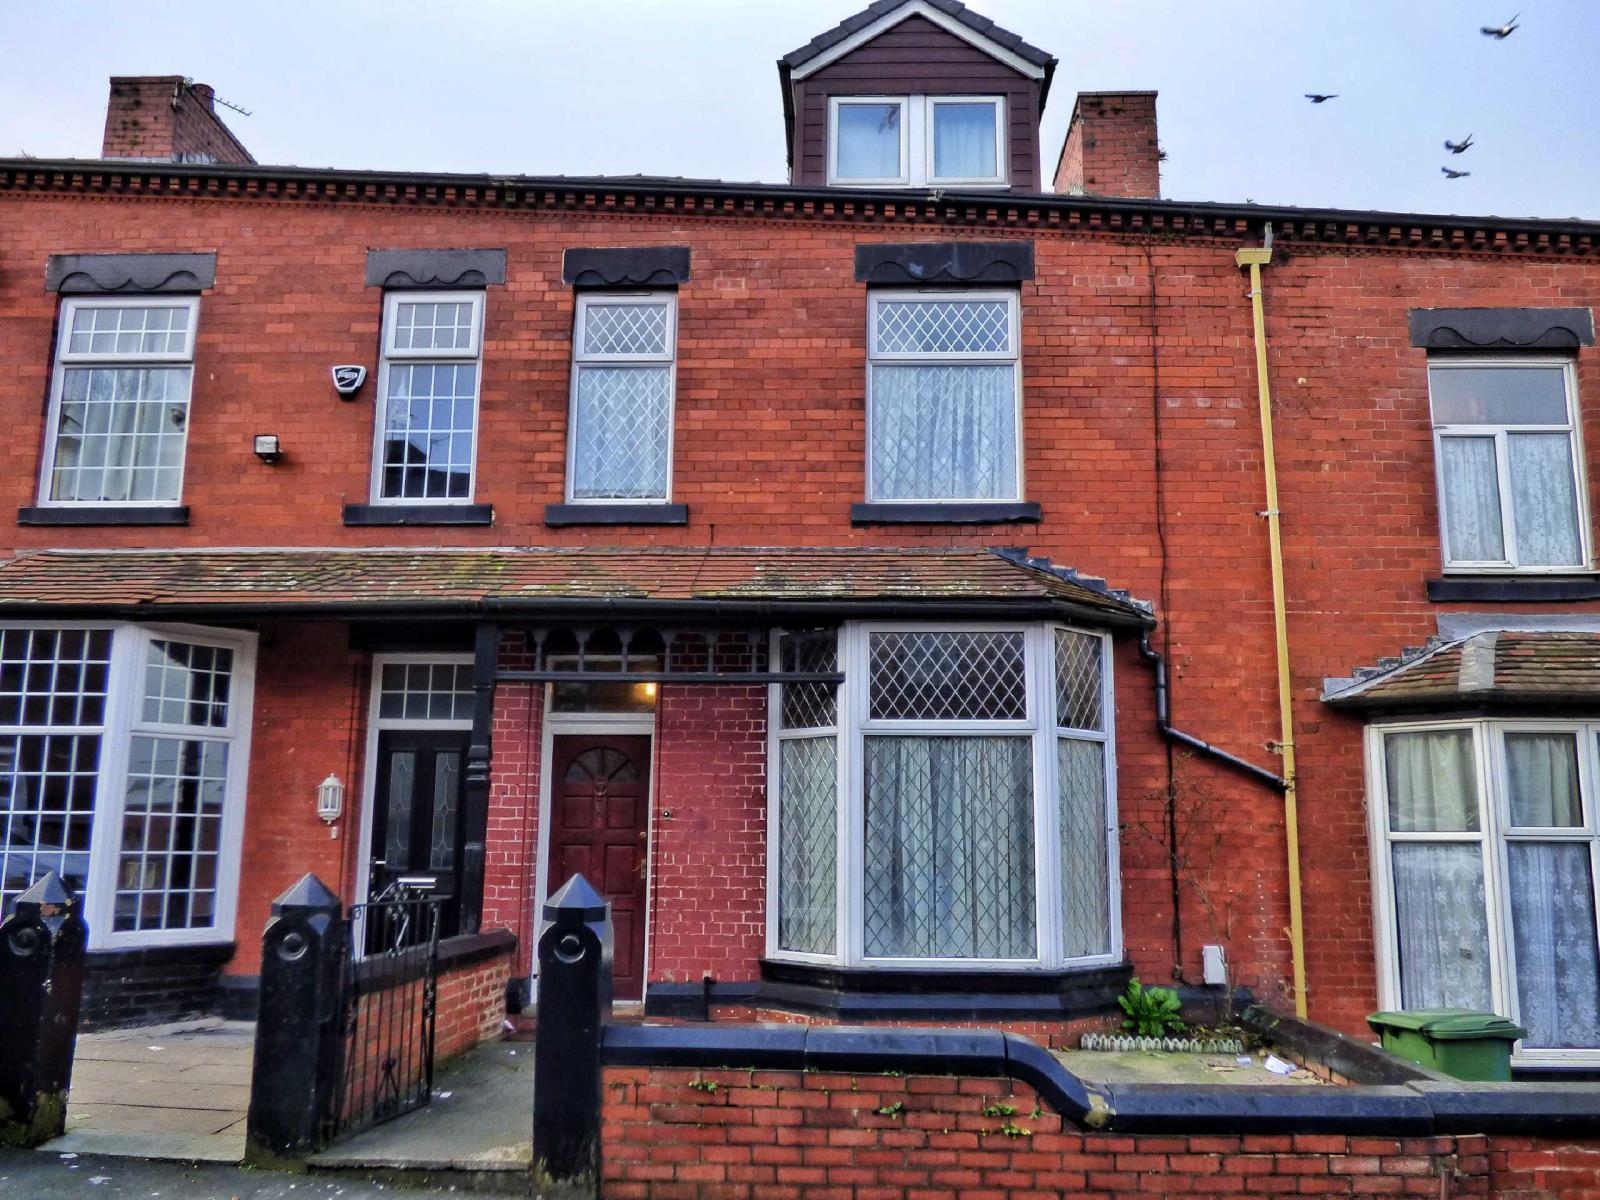 6 Bedrooms Terraced House for sale in Newport Street, Coppice, Oldham, OL8